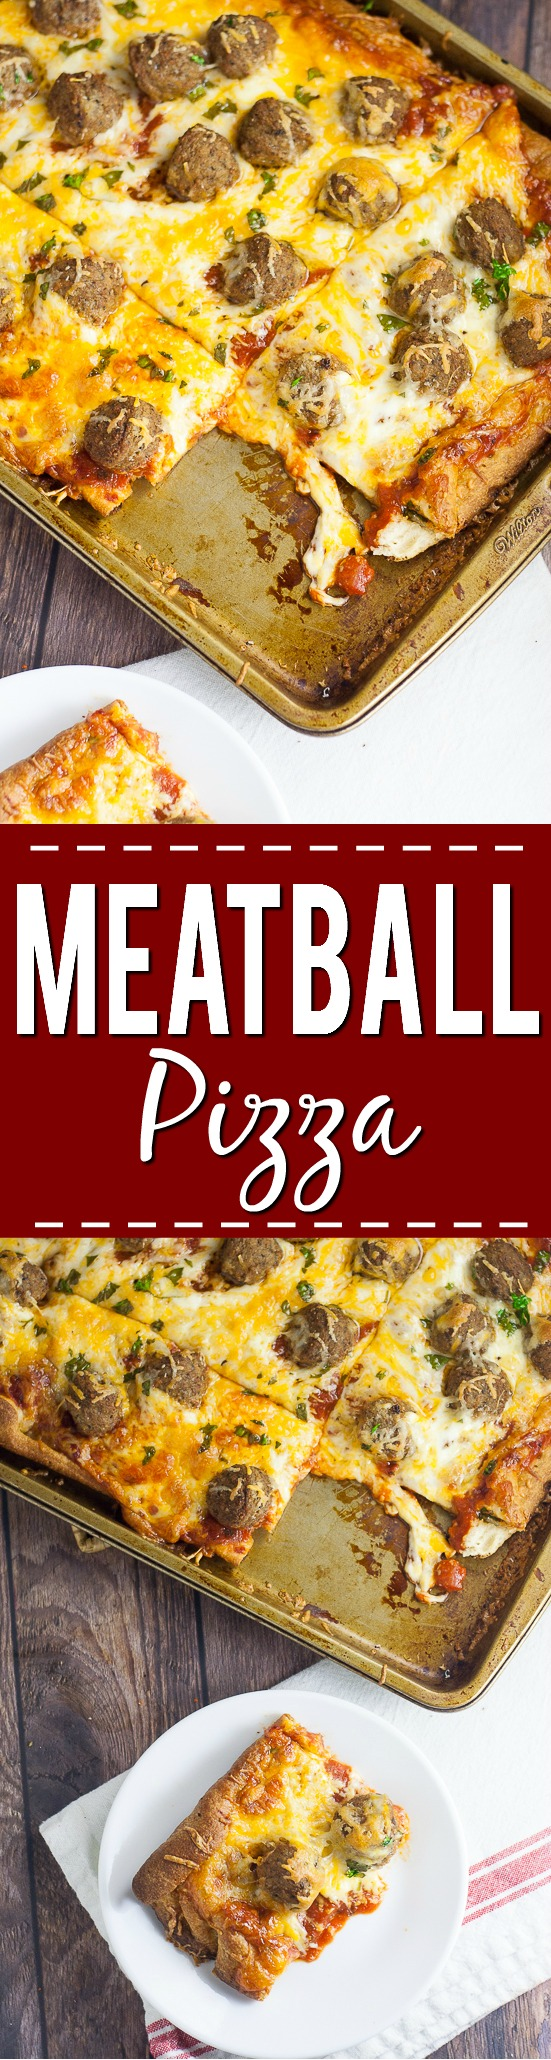 Meatball Pizza Recipe -A quick and easy recipe for Meatball Pizza that even the kids can help with! Crispy crust, gooey cheese, and Italian meatballs make the perfect family pizza night! Quick and easy family dinner recipe the kids will LOVE!